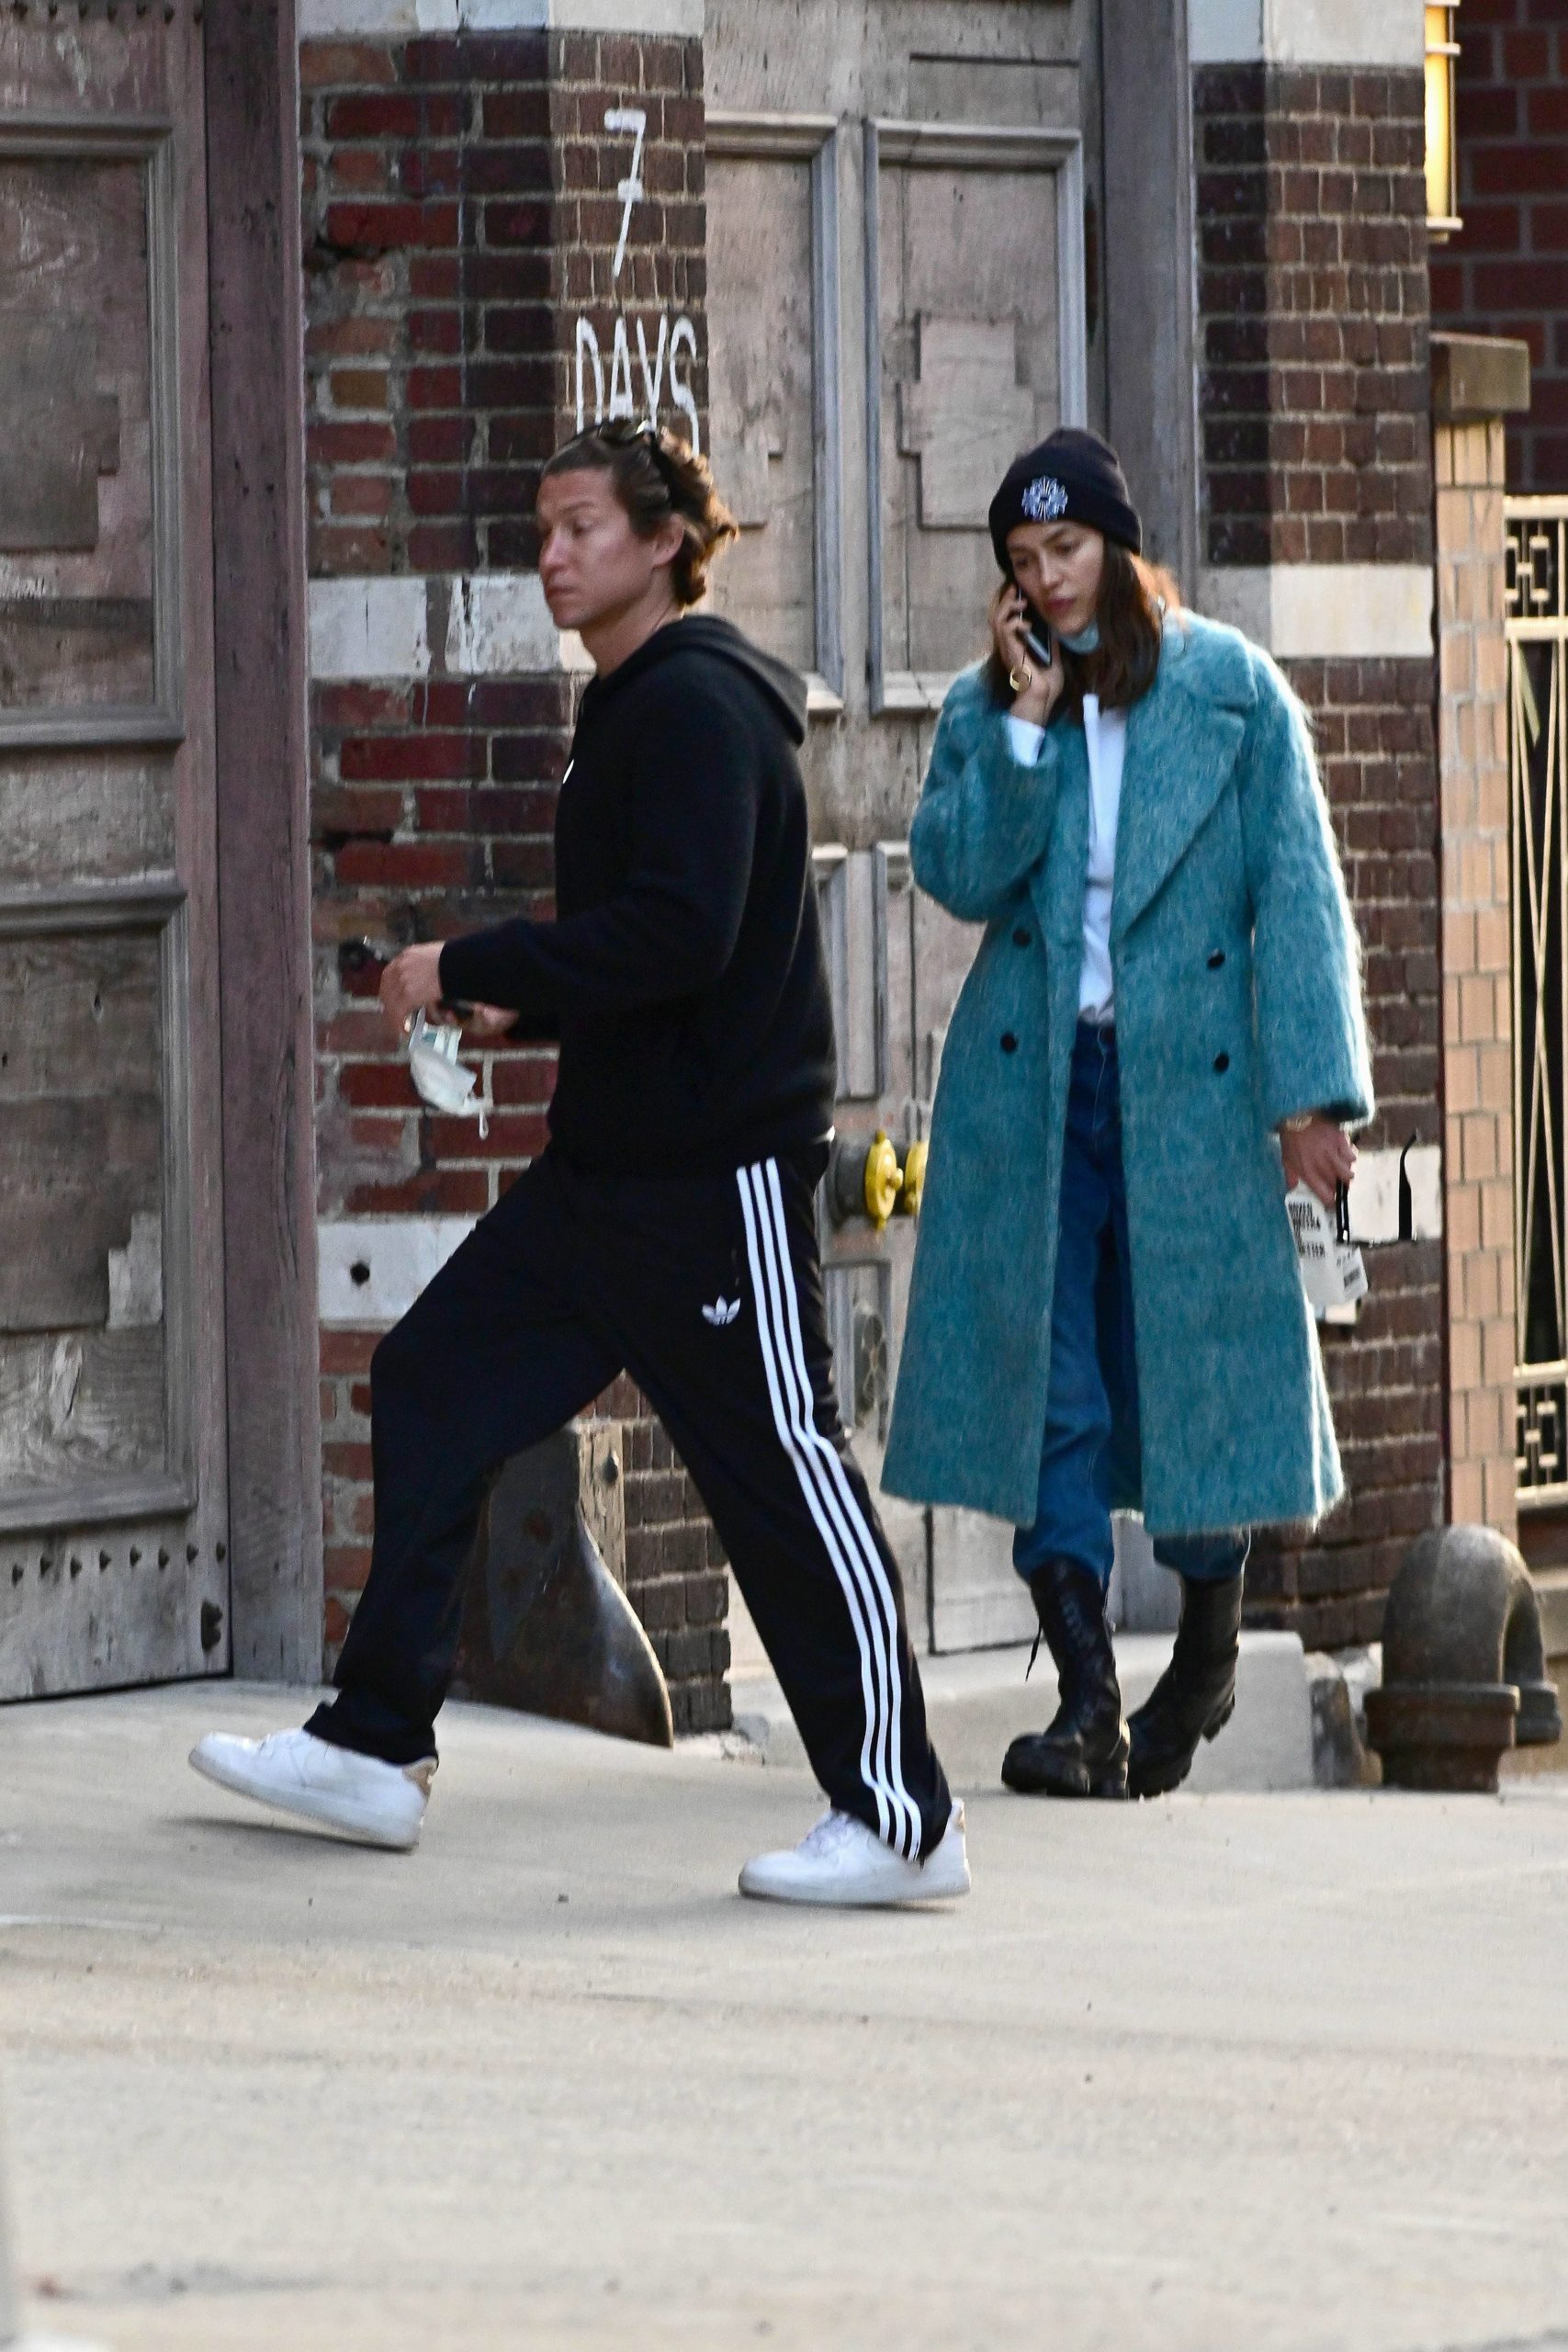 СПЕЦЦЕНА. ТРЕБУЕТСЯ ОДОБРЕНИЕ. SPECIAL PRICE APPLIES. APPROVAL REQUIRED PREMIUM EXCLUSIVE: Irina Shayk is Spotted During the Coronavirus Quarantine Keeping Close with Vito Schnabel in New York City